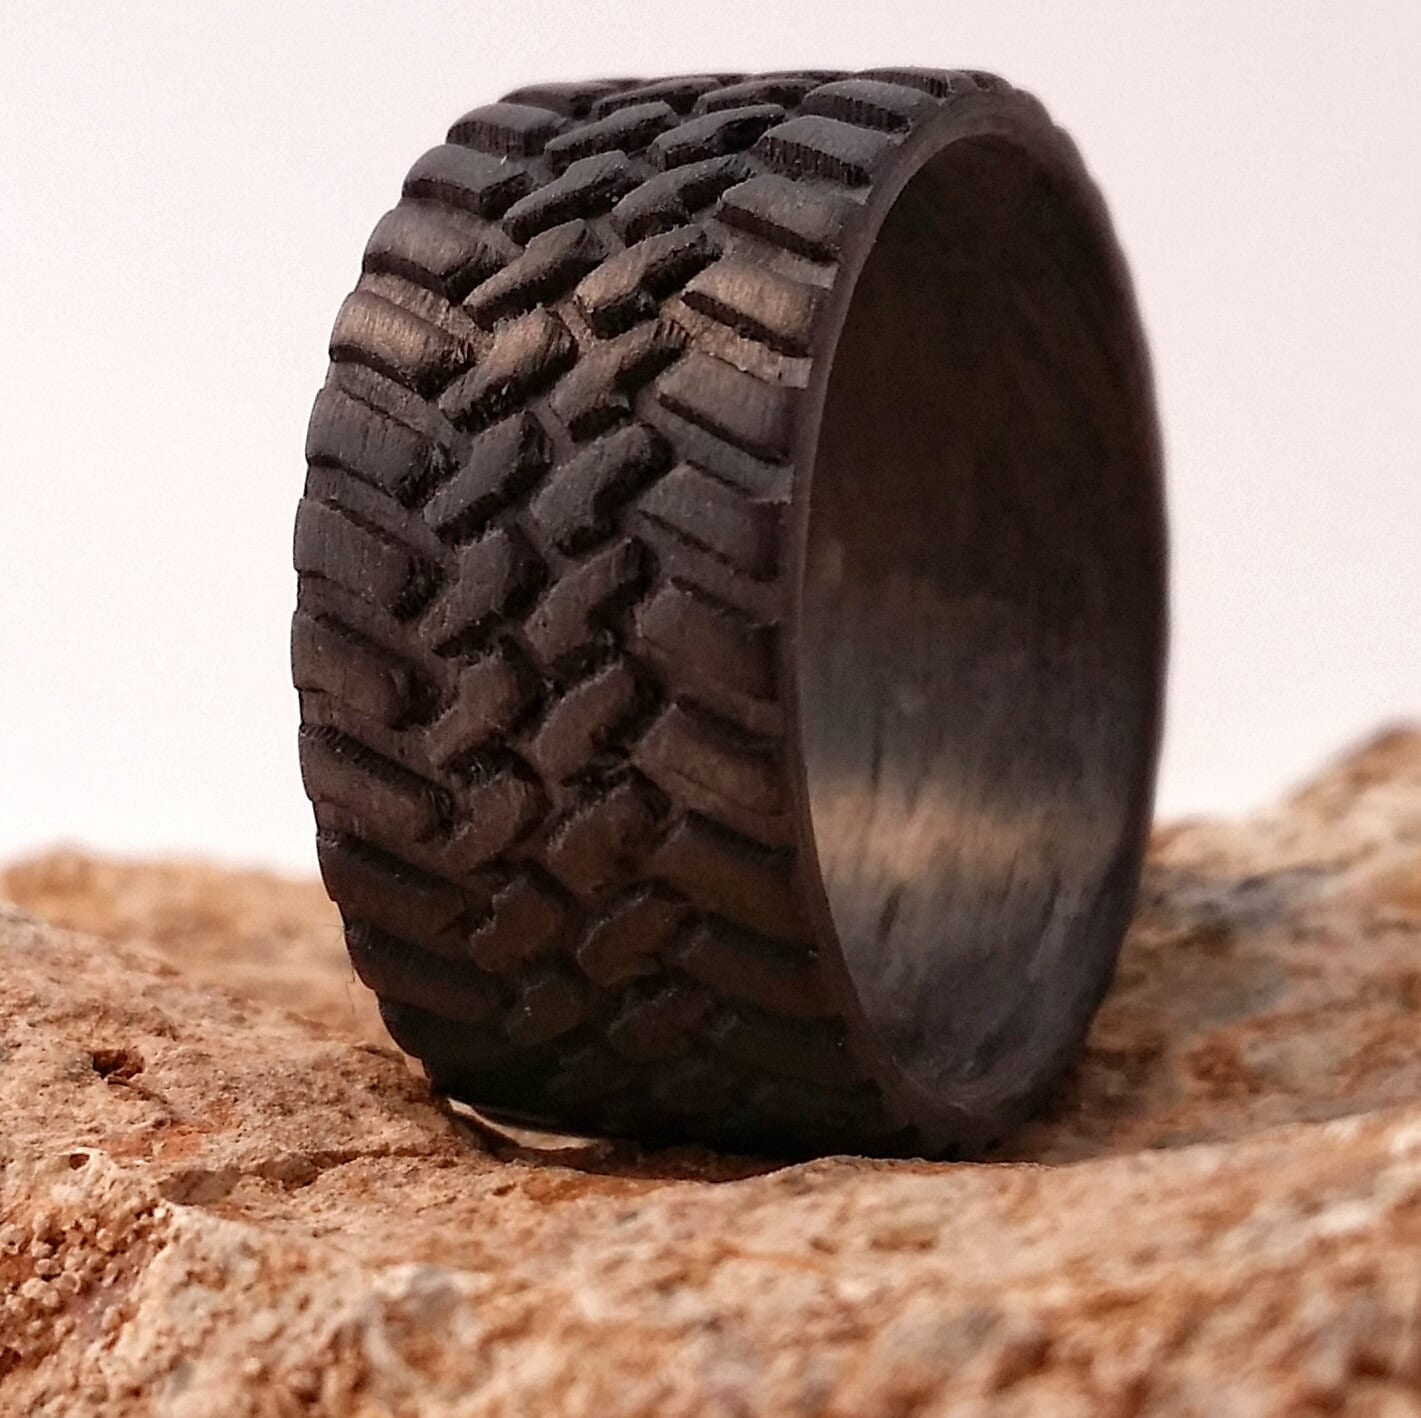 tire ring mud tire wedding ring Off Road 10mm wide Carbon Fiber Tread Ring Strong Light Weight Wedding Ring Comfort fit Durable Finish